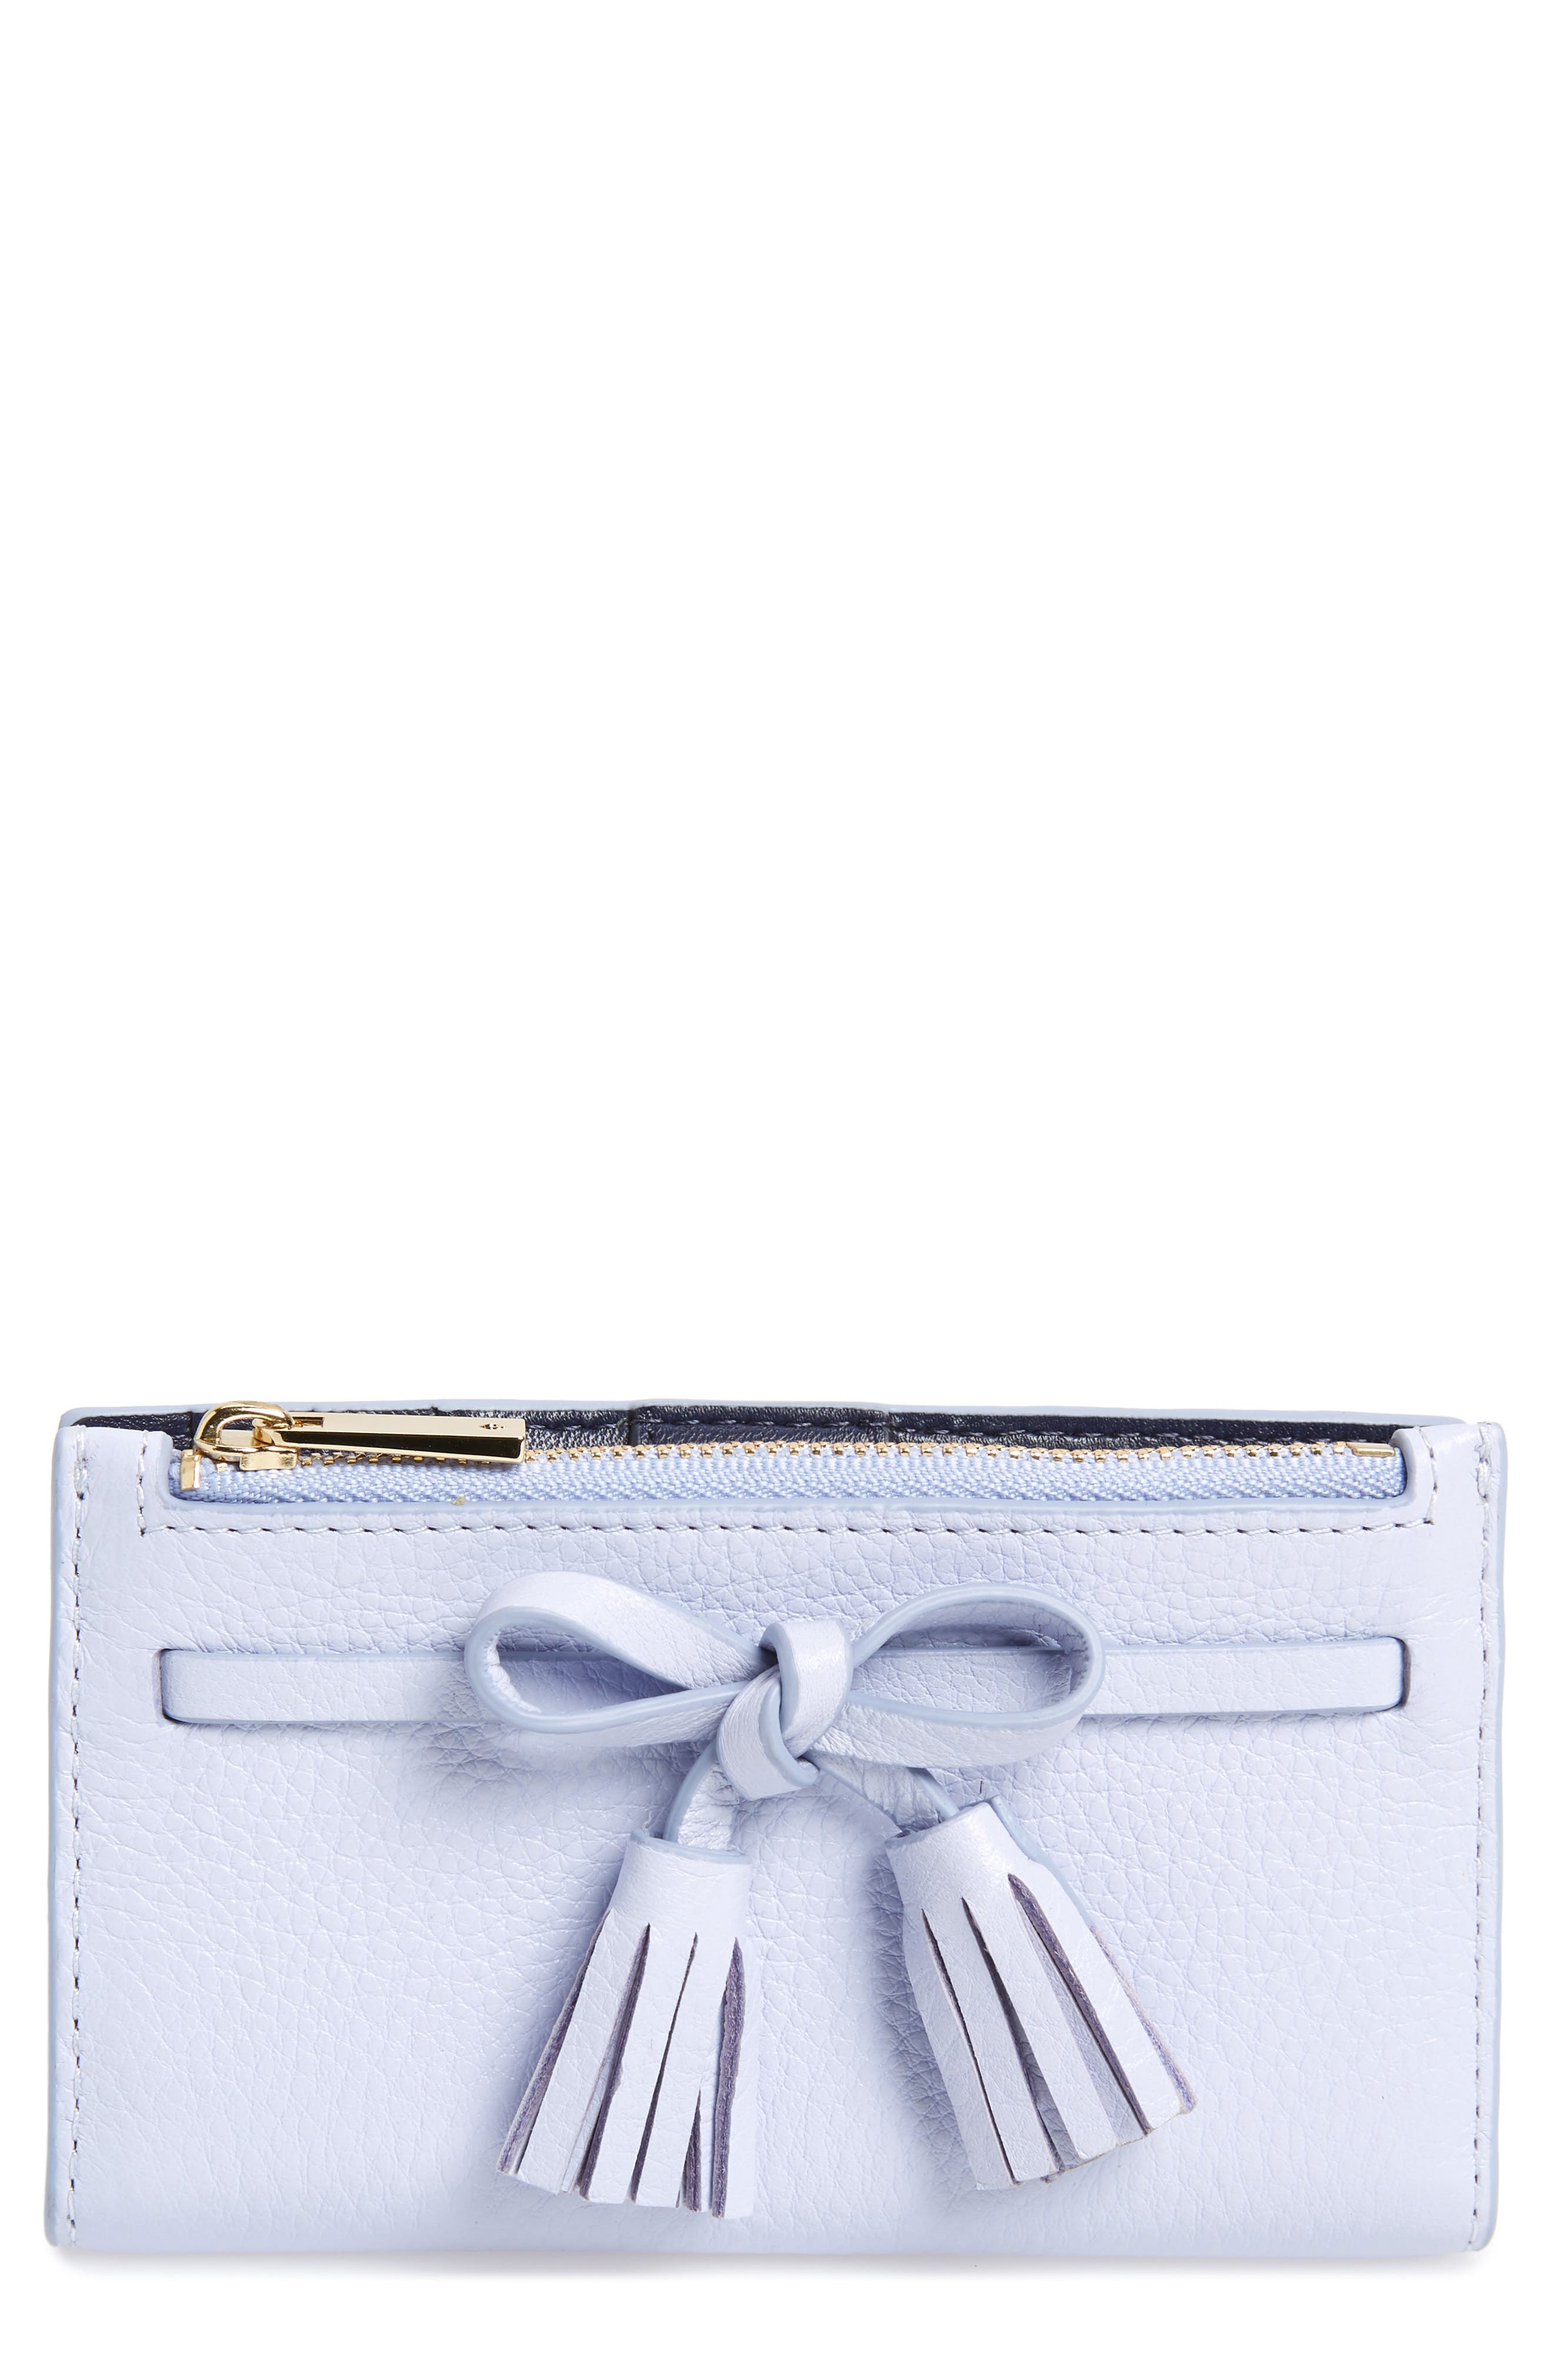 kate spade new york hayes street - mikey leather wallet